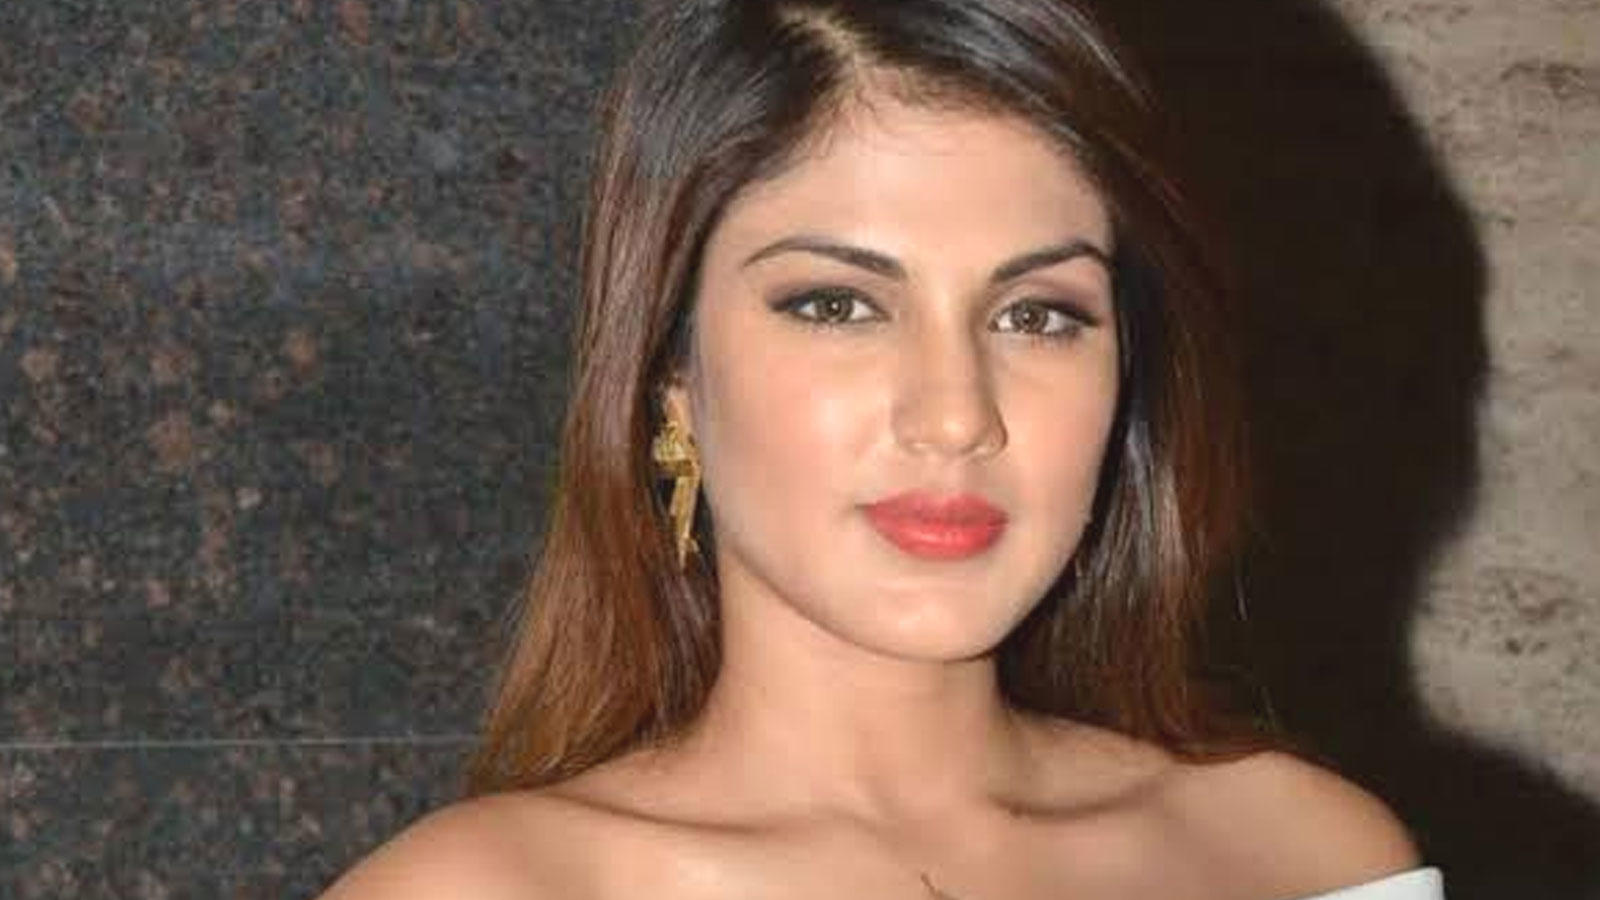 'Tough times call for unity', says Rhea Chakraborty as she offers help to those in need amid COVID-19 pandemic | Hindi Movie News – Bollywood – Times of India